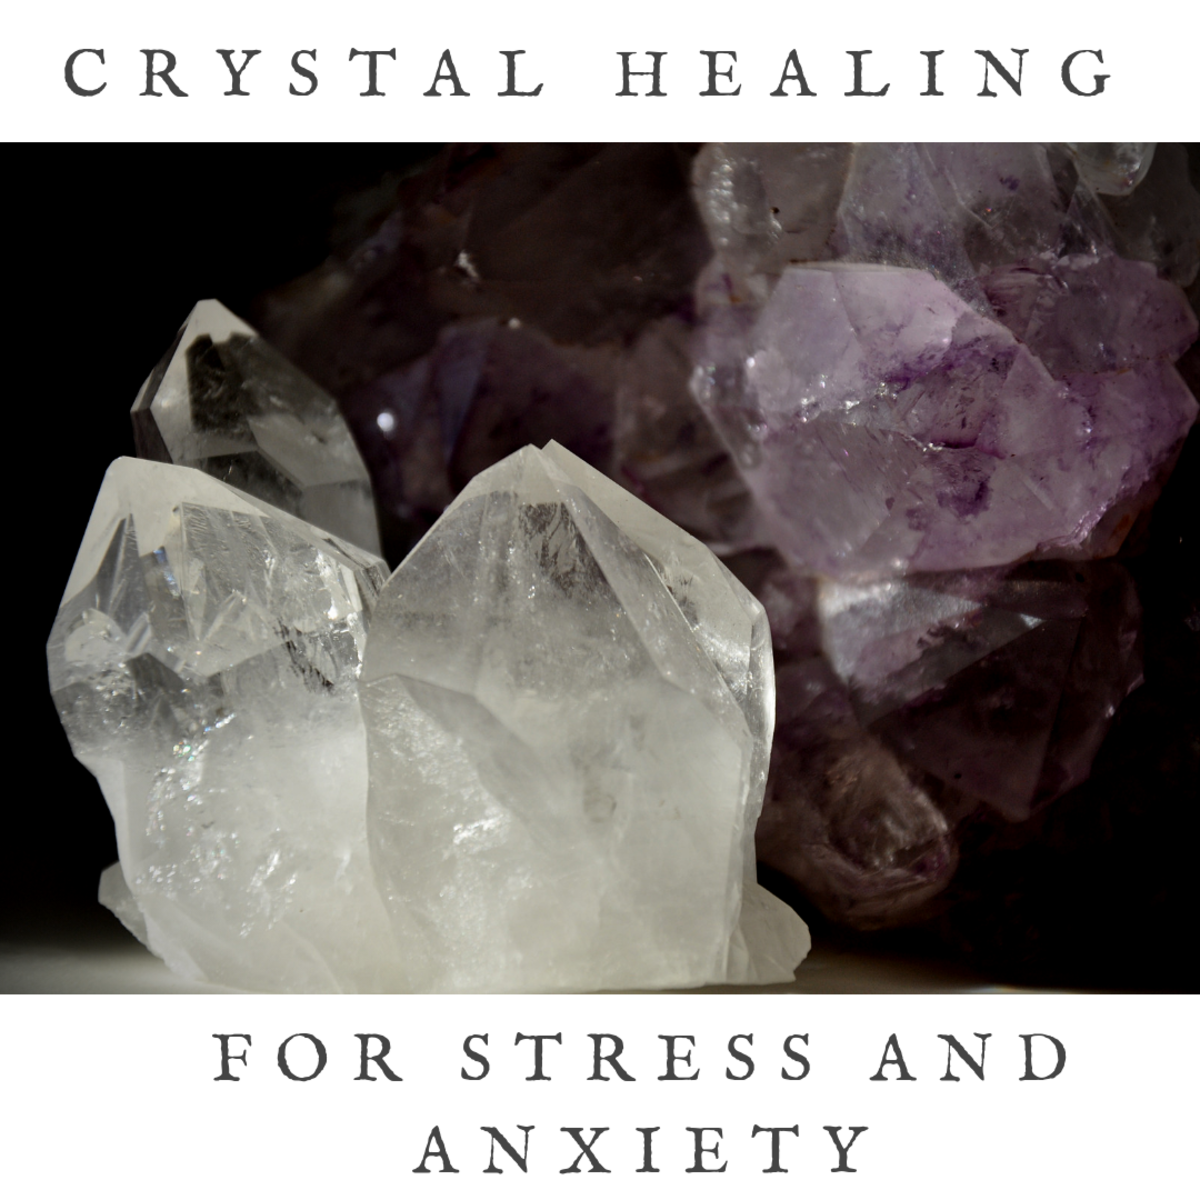 10 Healing Crystals and Stones to Ease Stress and Anxiety